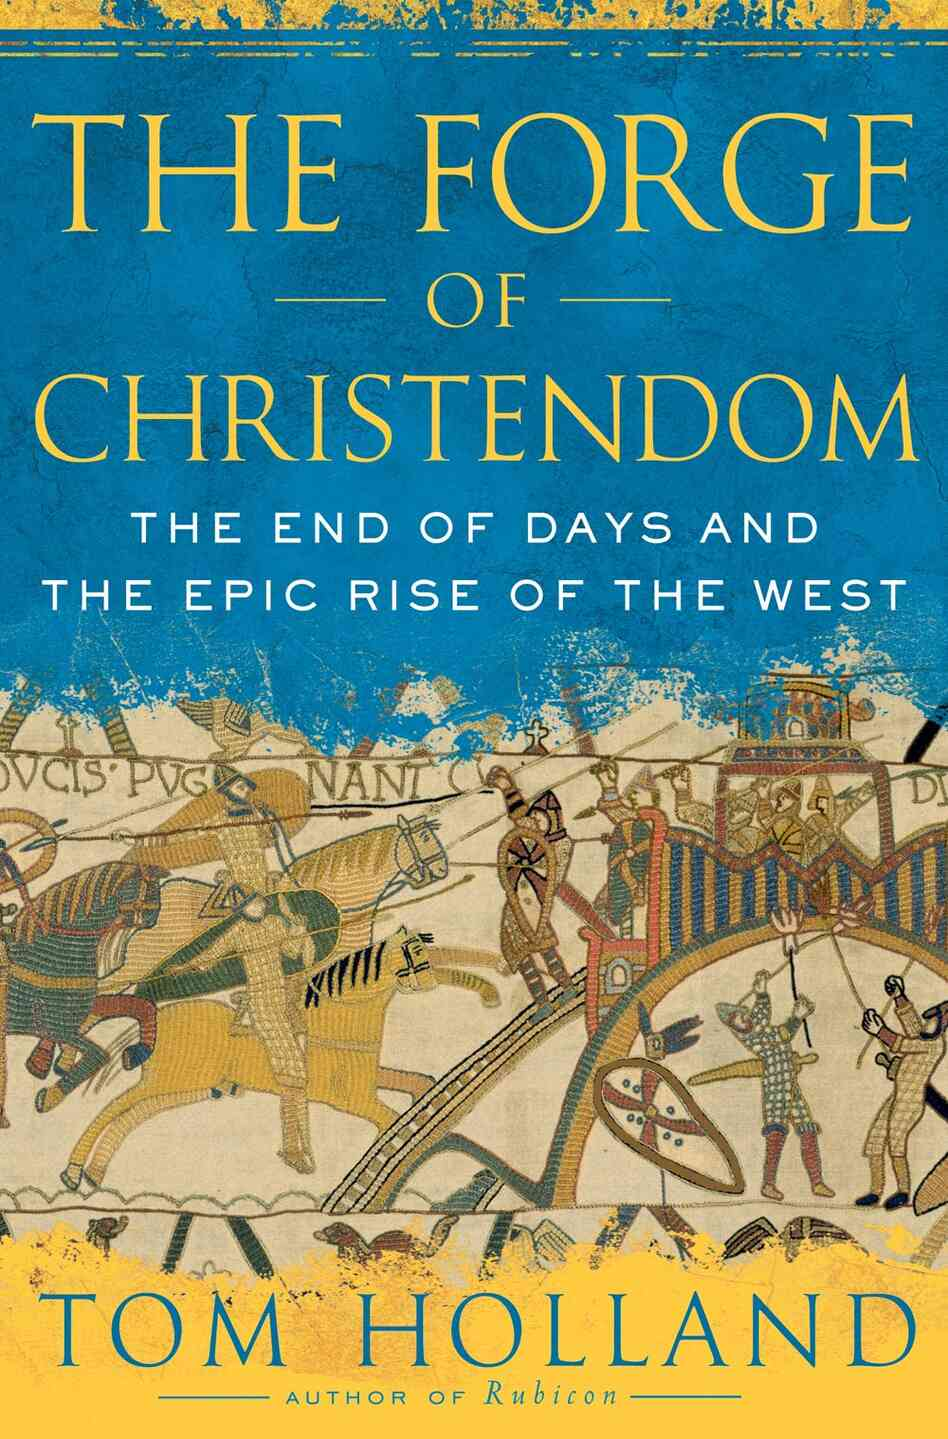 'The Forge of Christendom' book cover